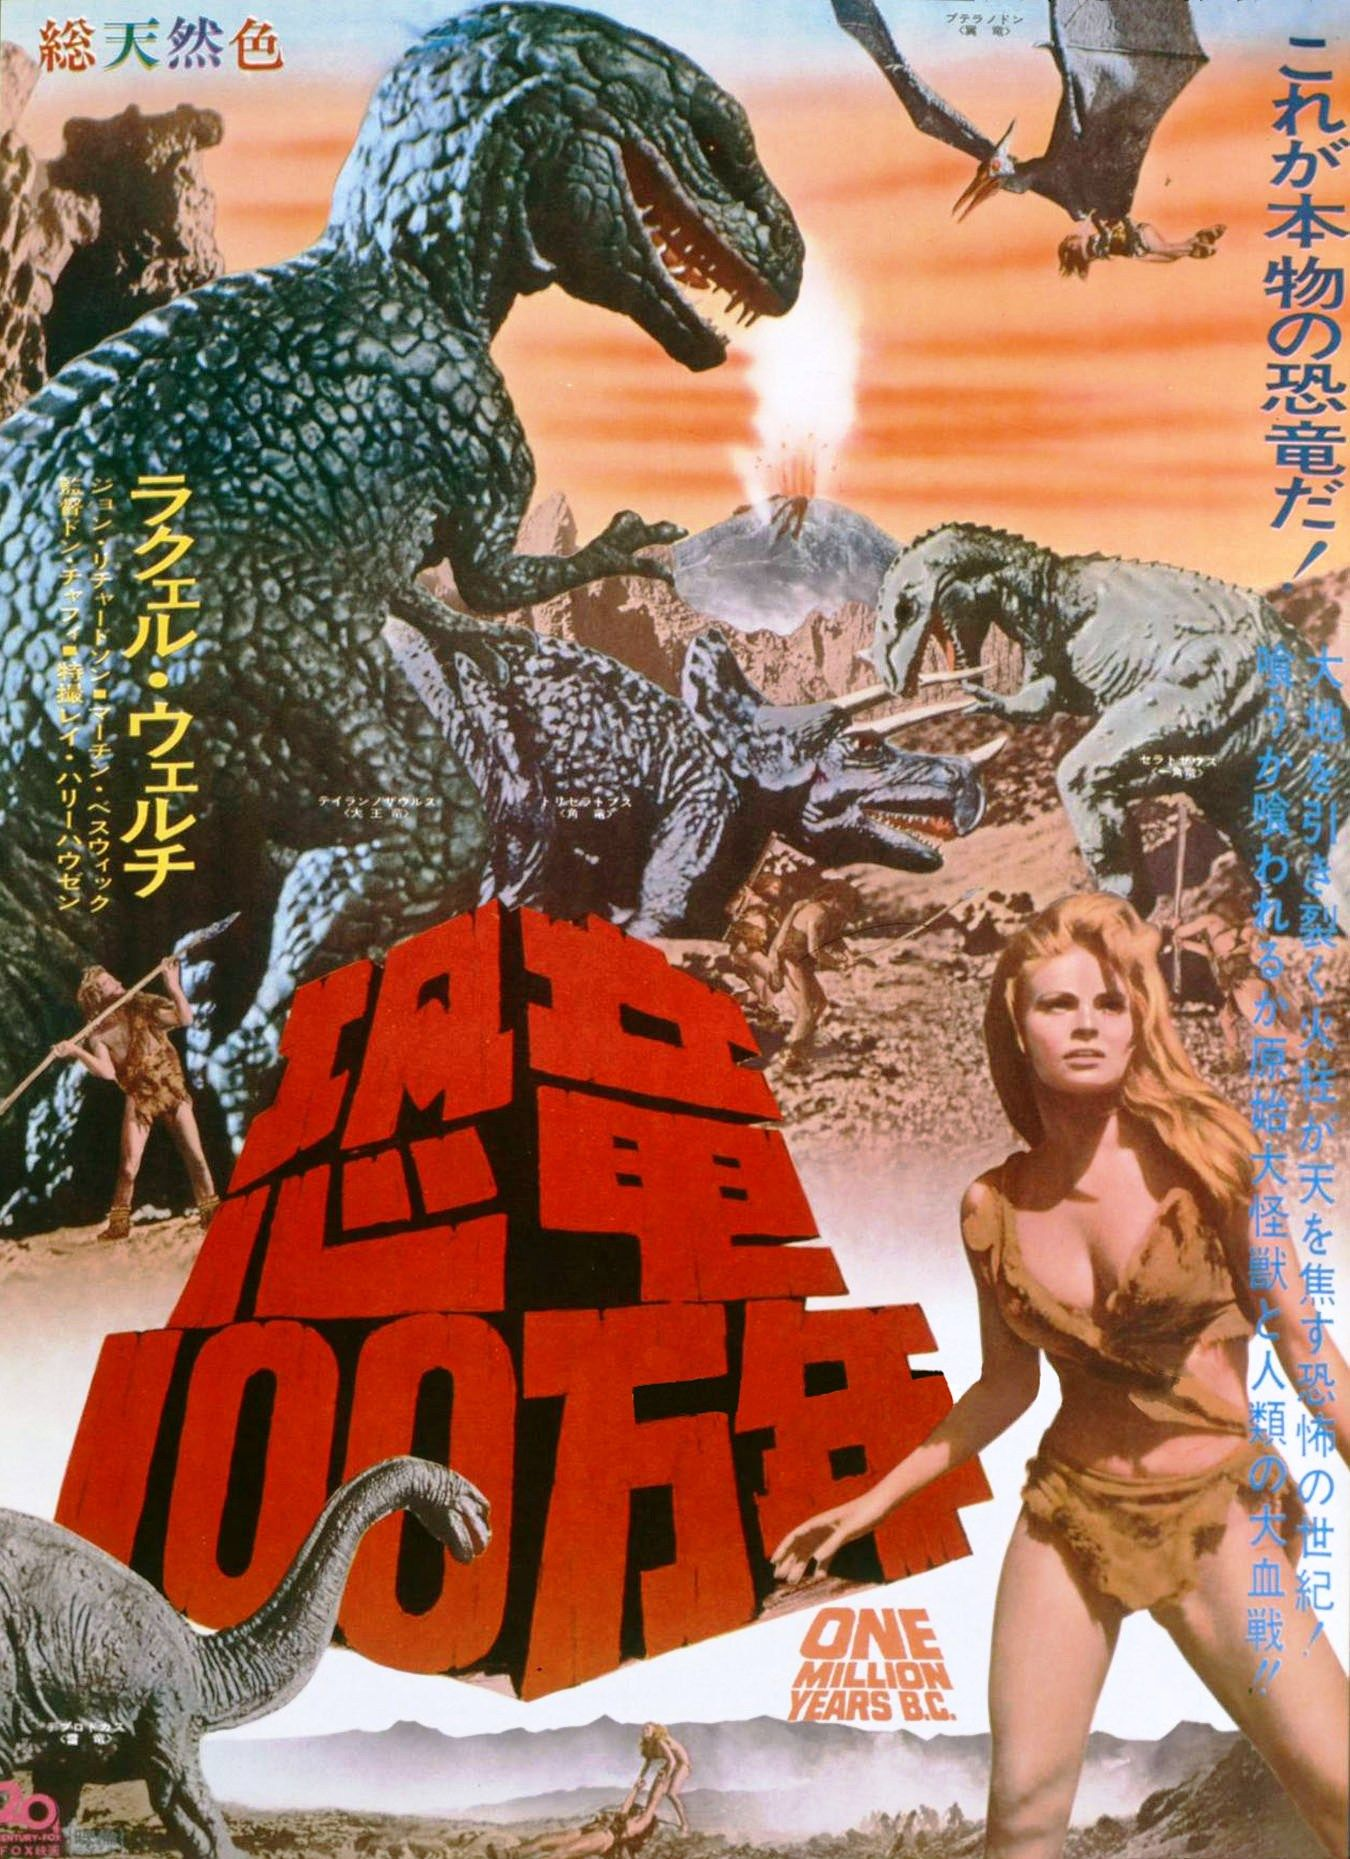 One Million Years B.C. (1966, UK)